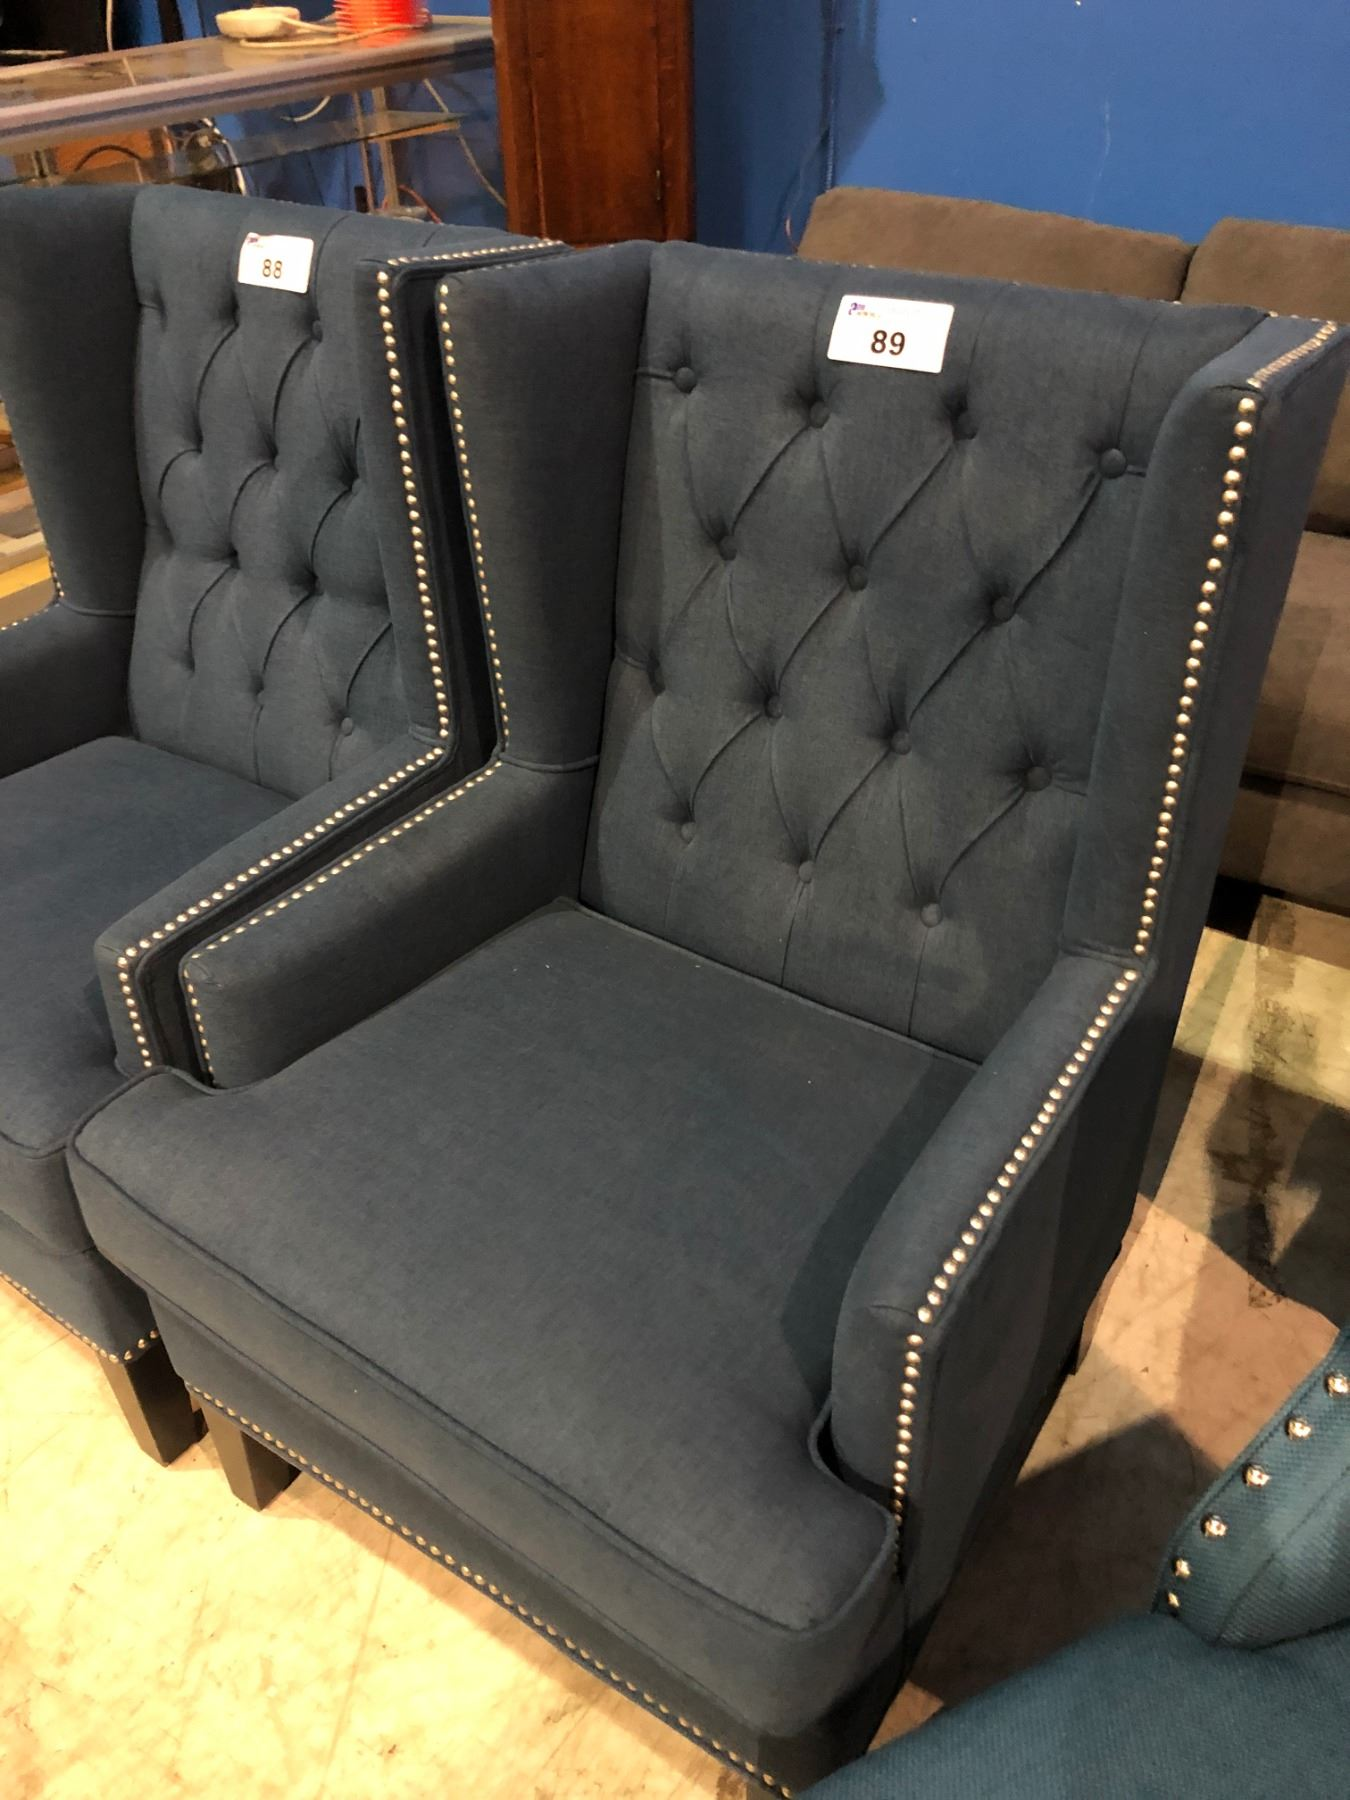 Surprising Blue Studded Modern Wingback Chair Small Hole On Top Short Links Chair Design For Home Short Linksinfo